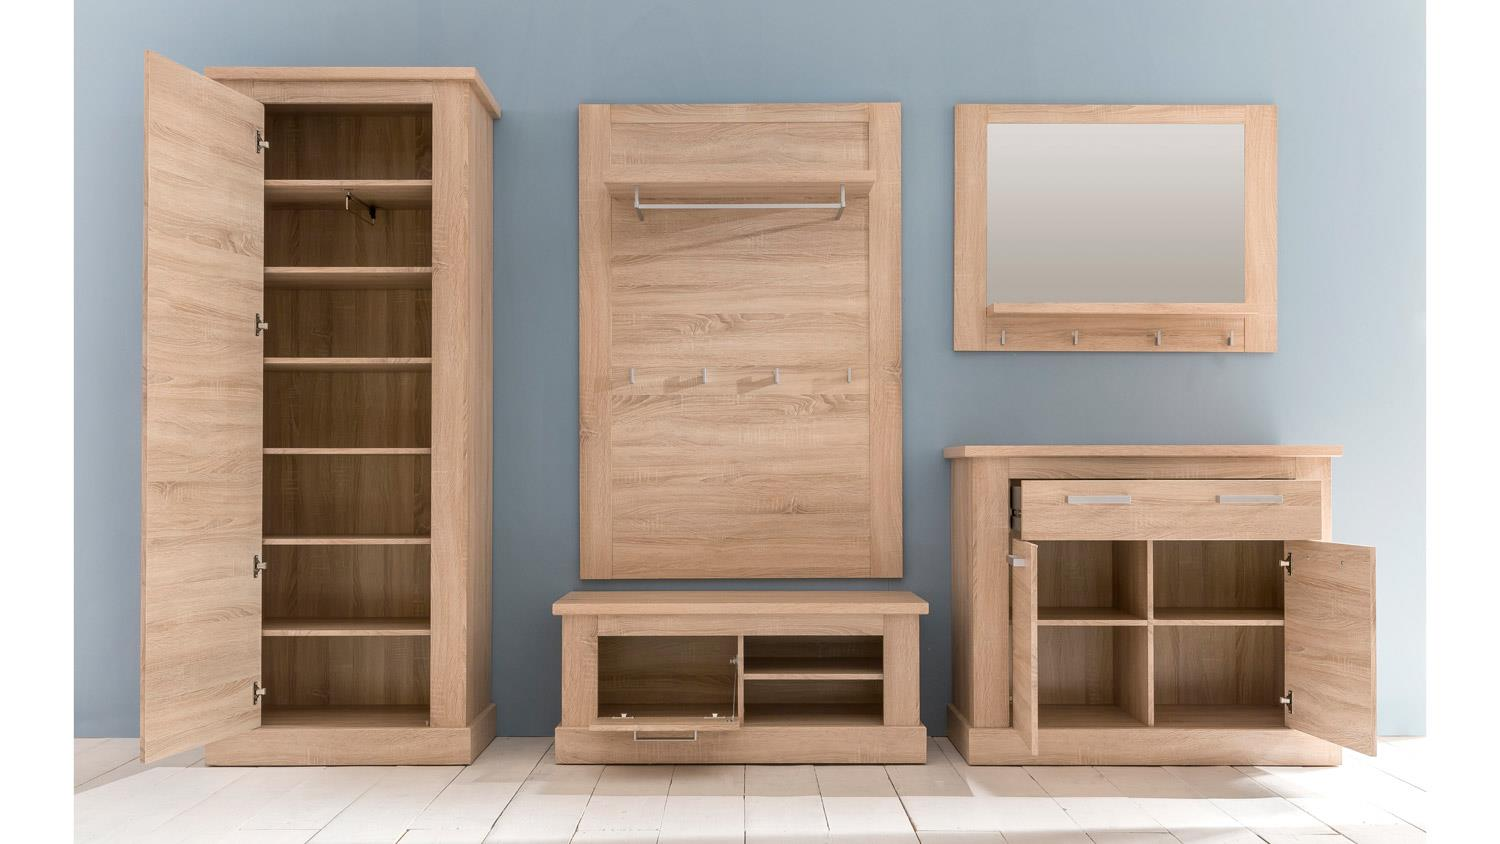 porta mbel garderobe skandi with porta mbel garderobe surprising garderobe vito cata bell. Black Bedroom Furniture Sets. Home Design Ideas